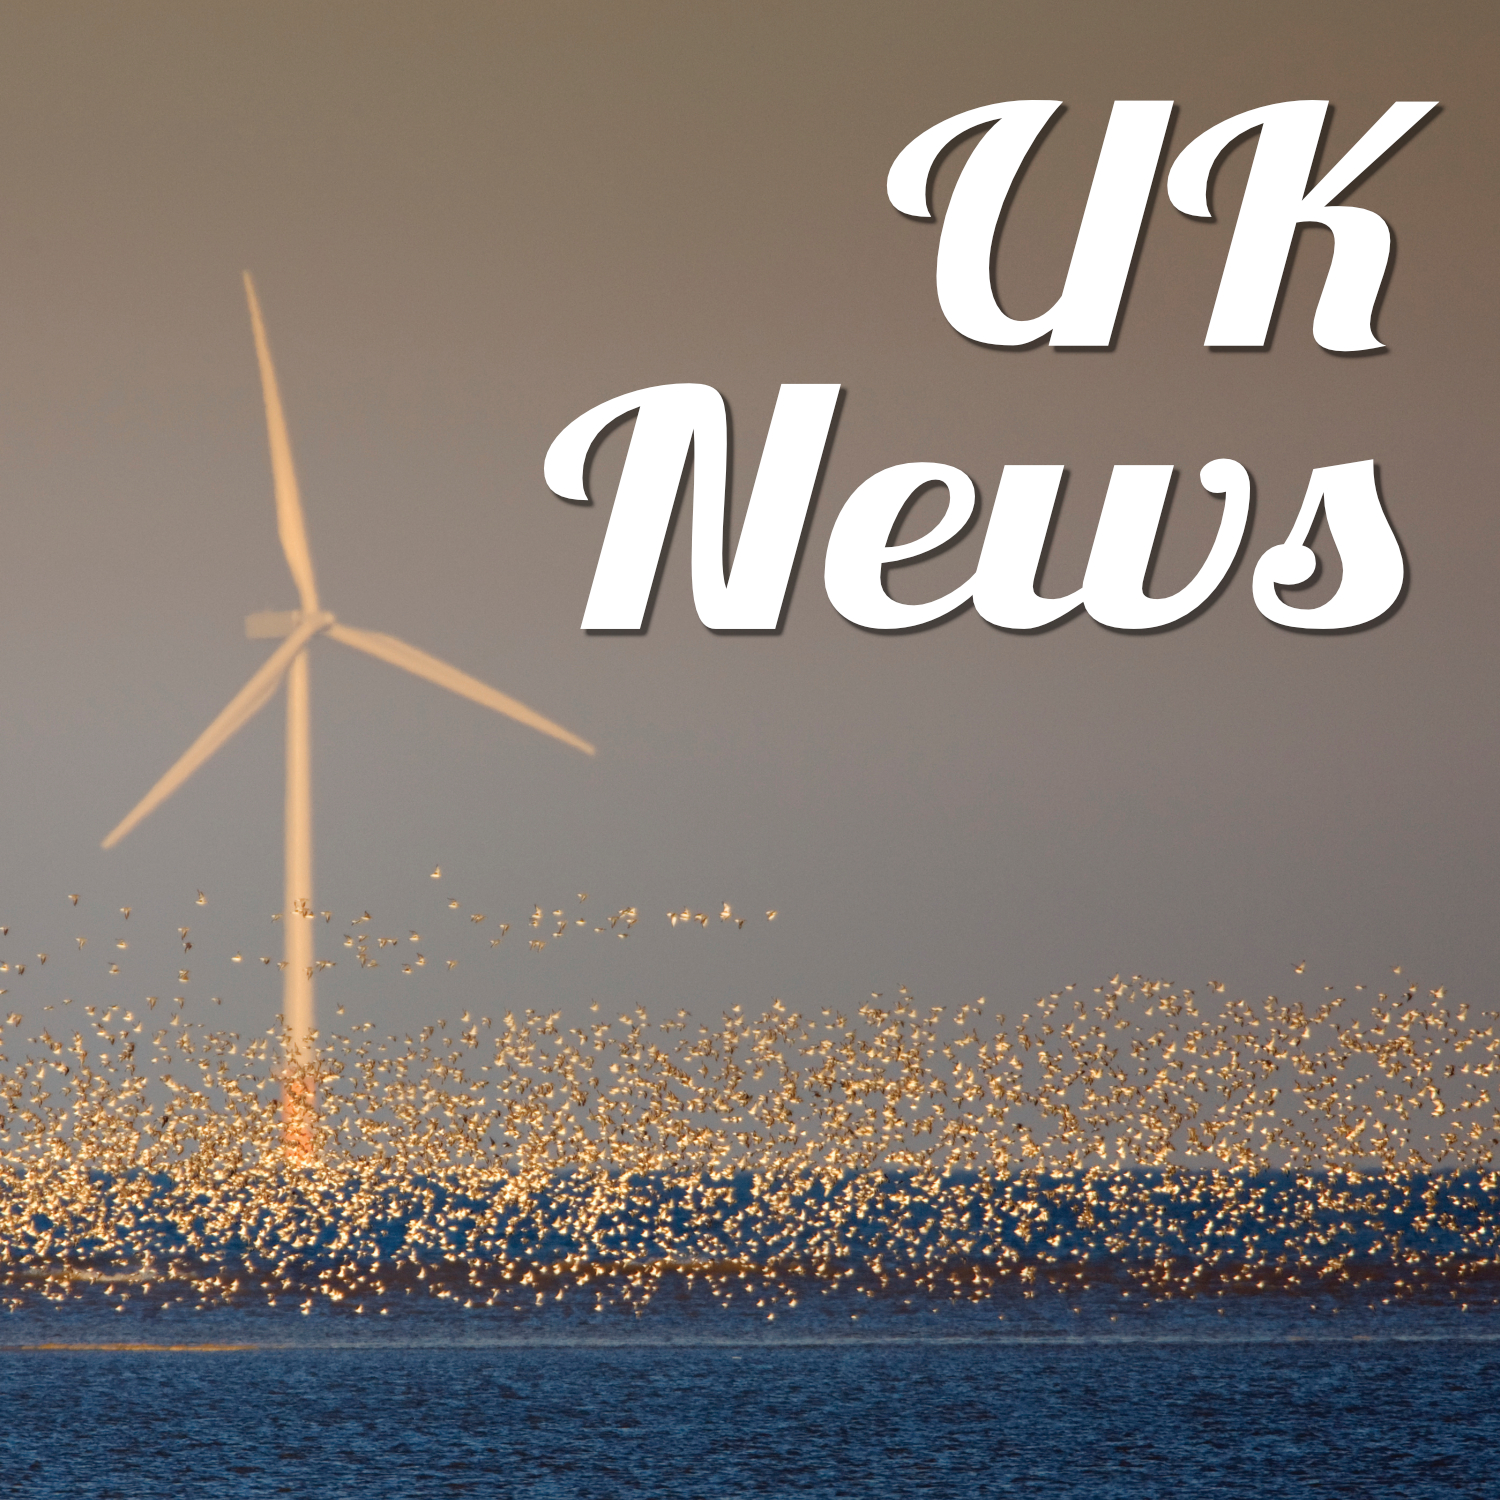 Photo of an off-shore wind turbine with a multitude of seabirds flying just above the blue sea. Text reads 'UK news'.